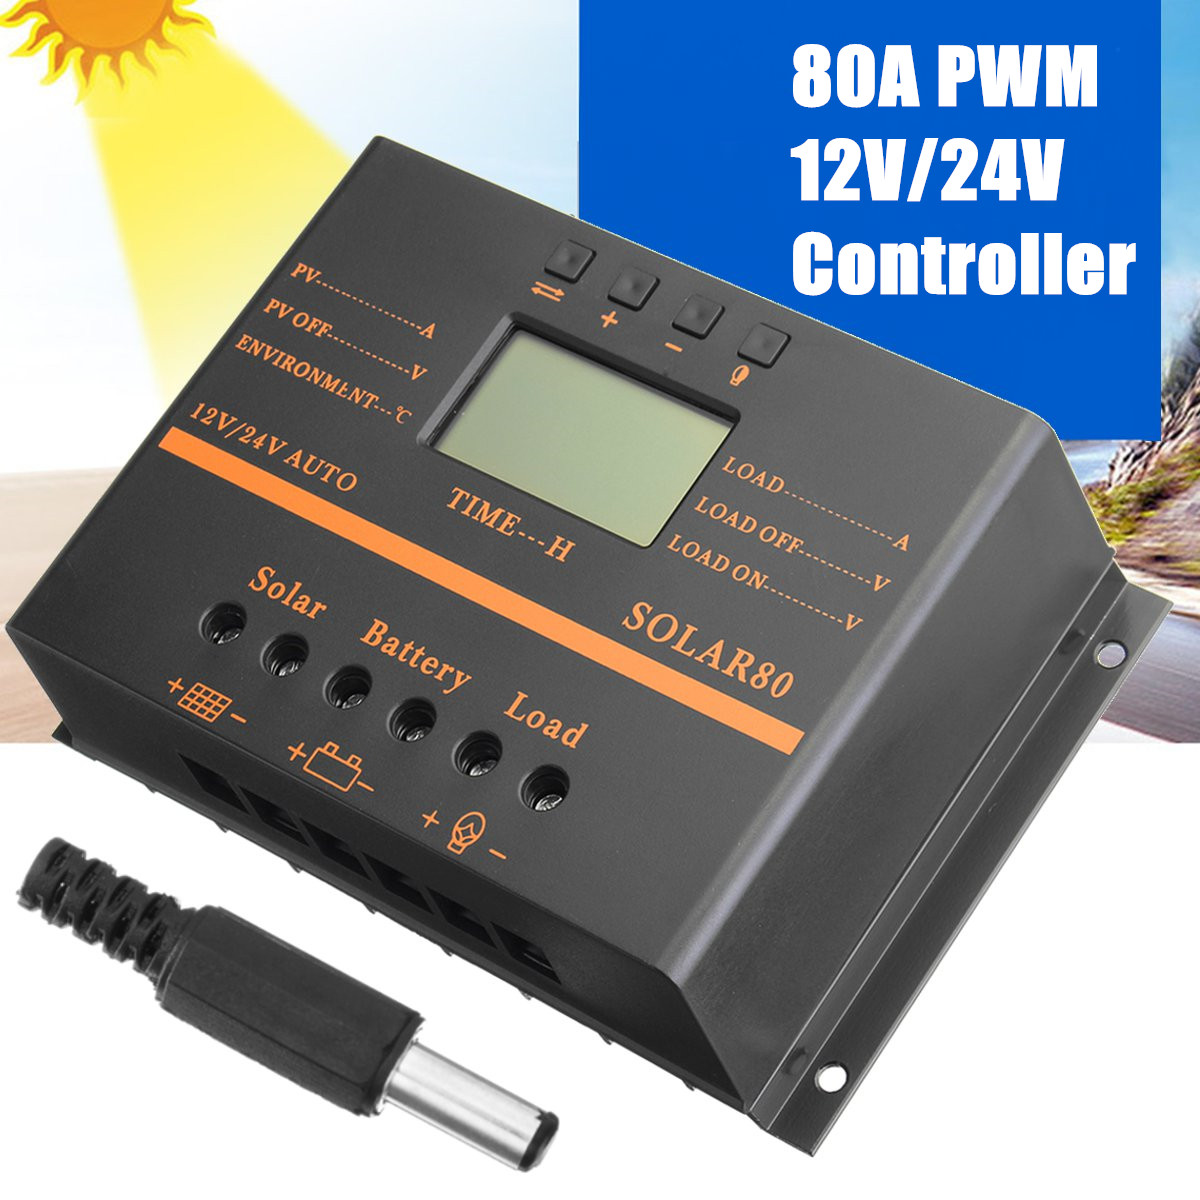 80A New Solar Controller 5V USB charger for mobile phone 12V 24V PV panel Battery Charge Controller Solar system Home indoor use80A New Solar Controller 5V USB charger for mobile phone 12V 24V PV panel Battery Charge Controller Solar system Home indoor use